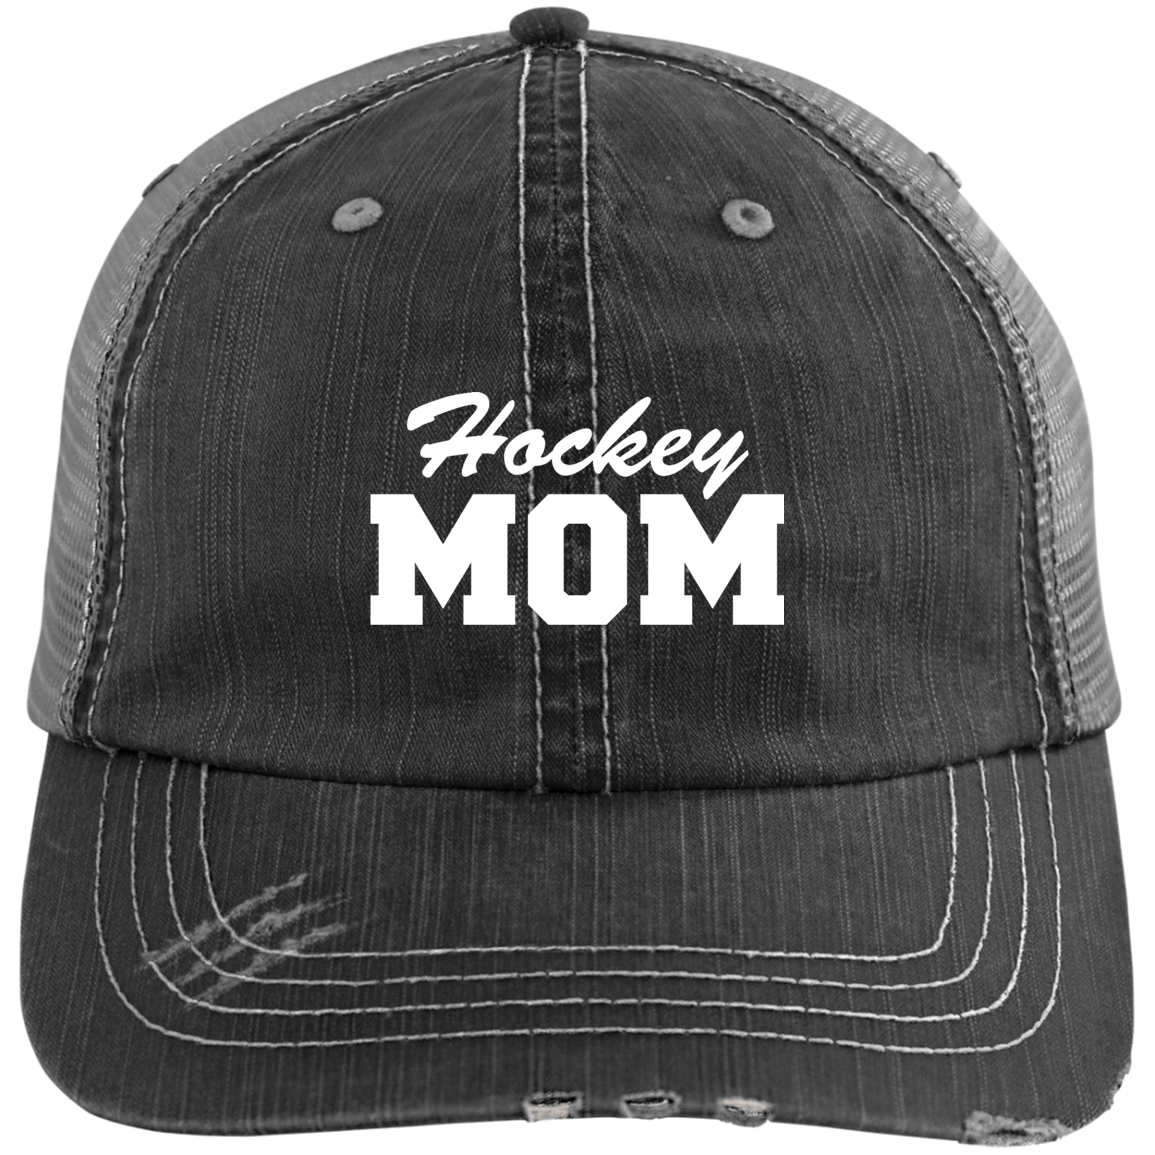 Hockey Mom Hat